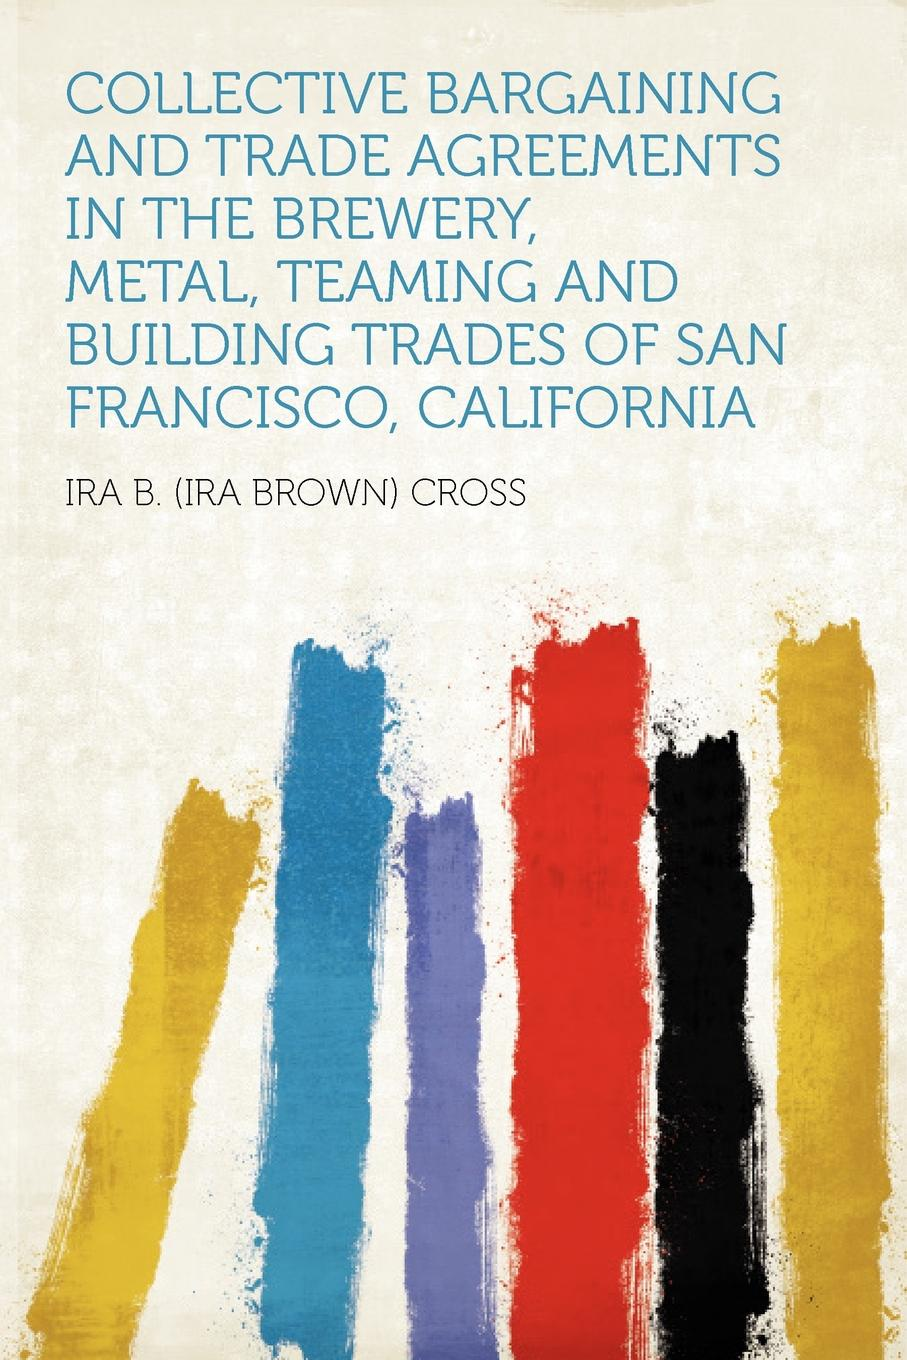 Collective Bargaining and Trade Agreements in the Brewery, Metal, Teaming Building Trades of San Francisco, California